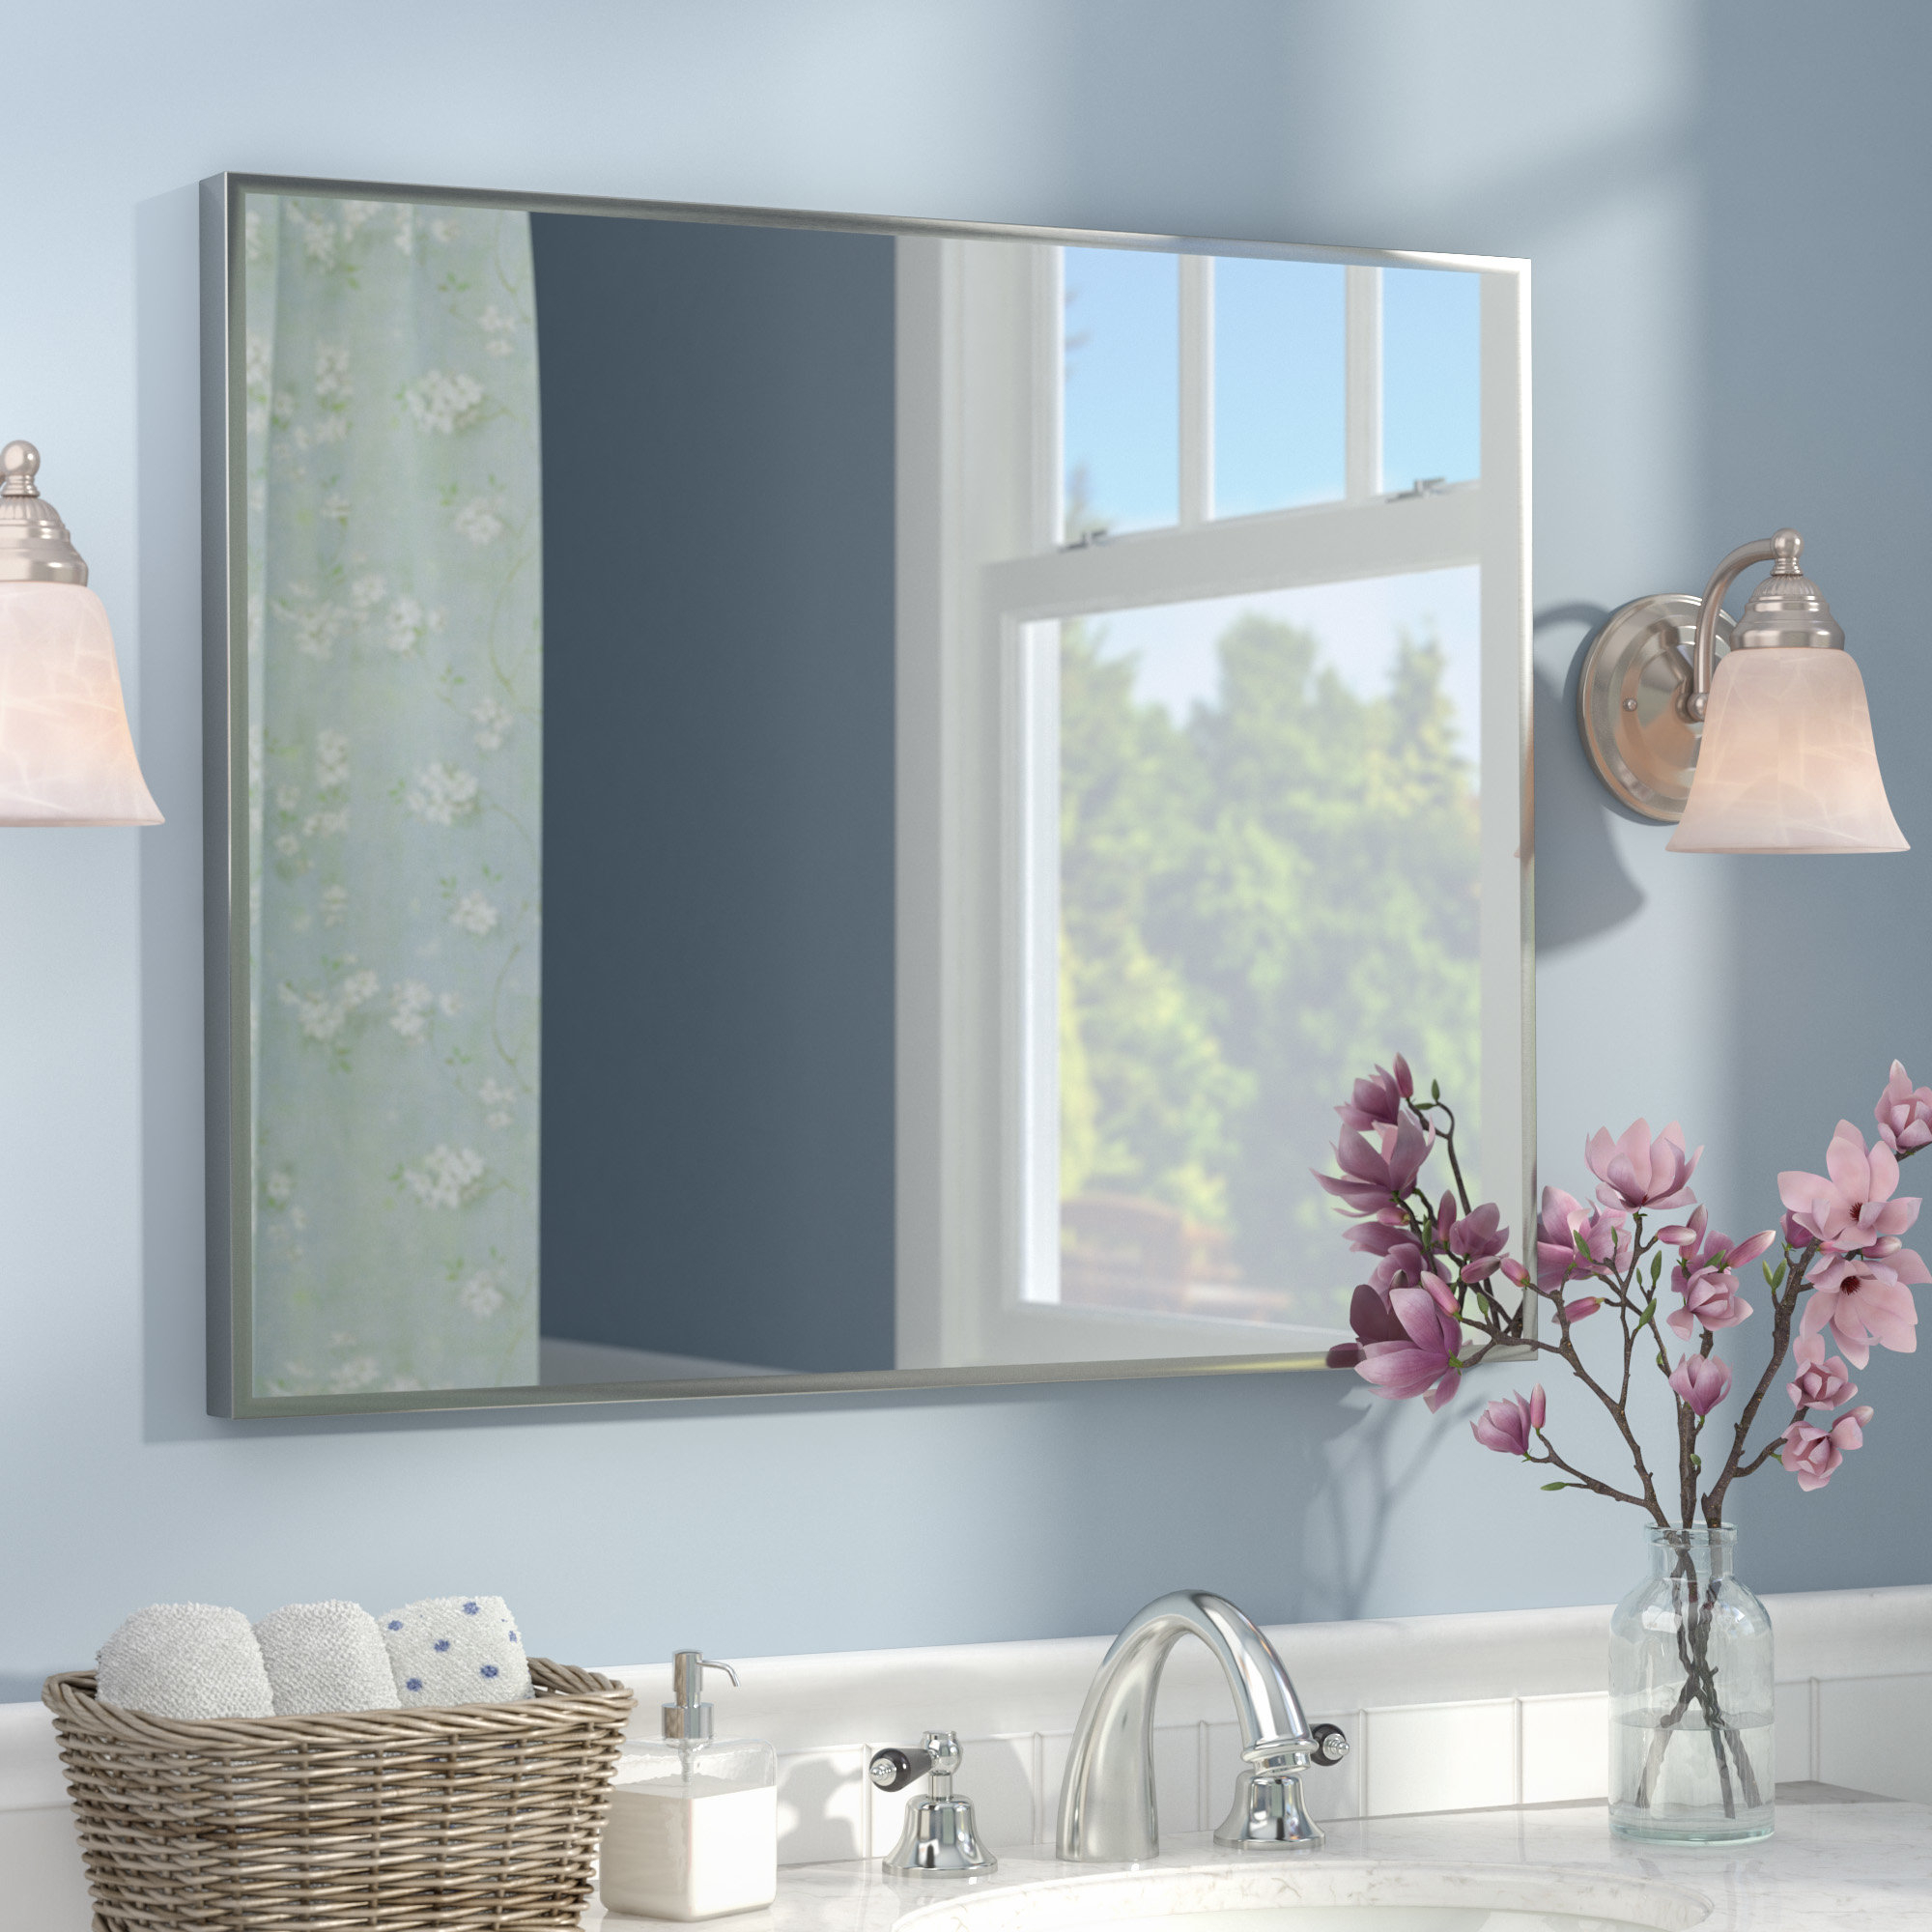 2019 Northend Wall Mirrors In Newland Modern & Contemporary Bathroom/vanity Mirror (View 6 of 20)